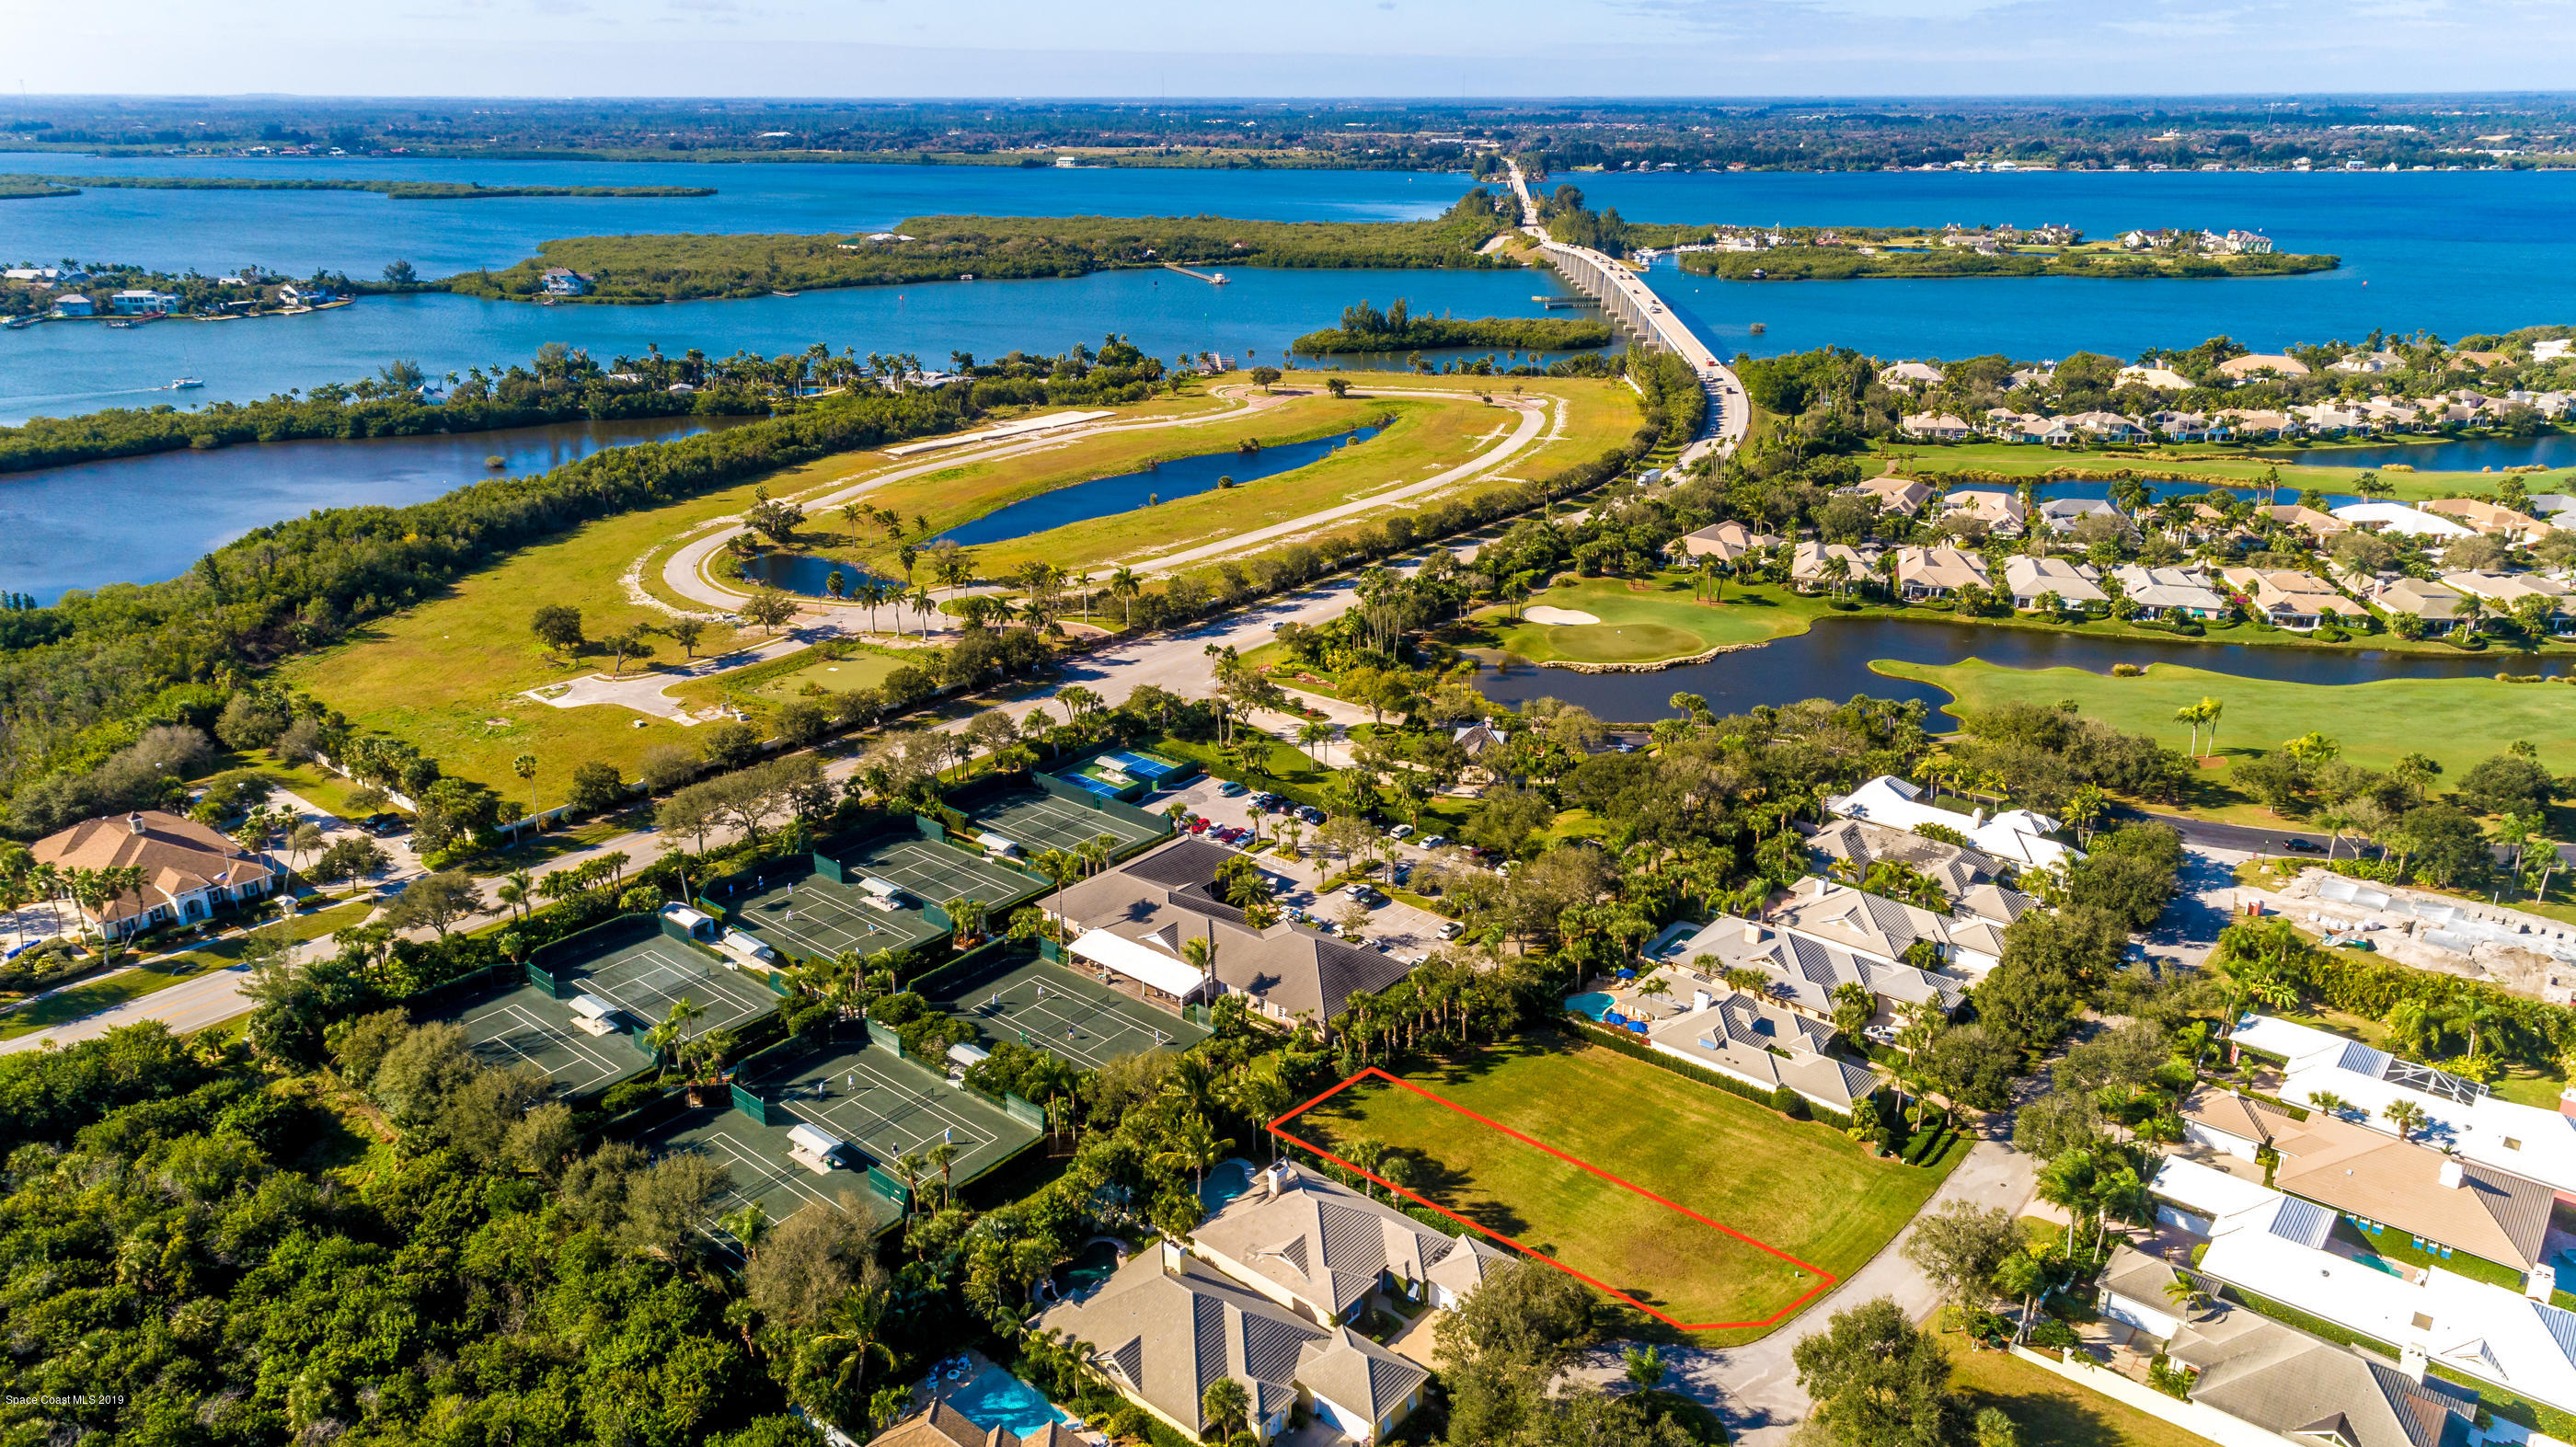 Land for Sale at 56 Caribe Orchid, Florida 32963 United States